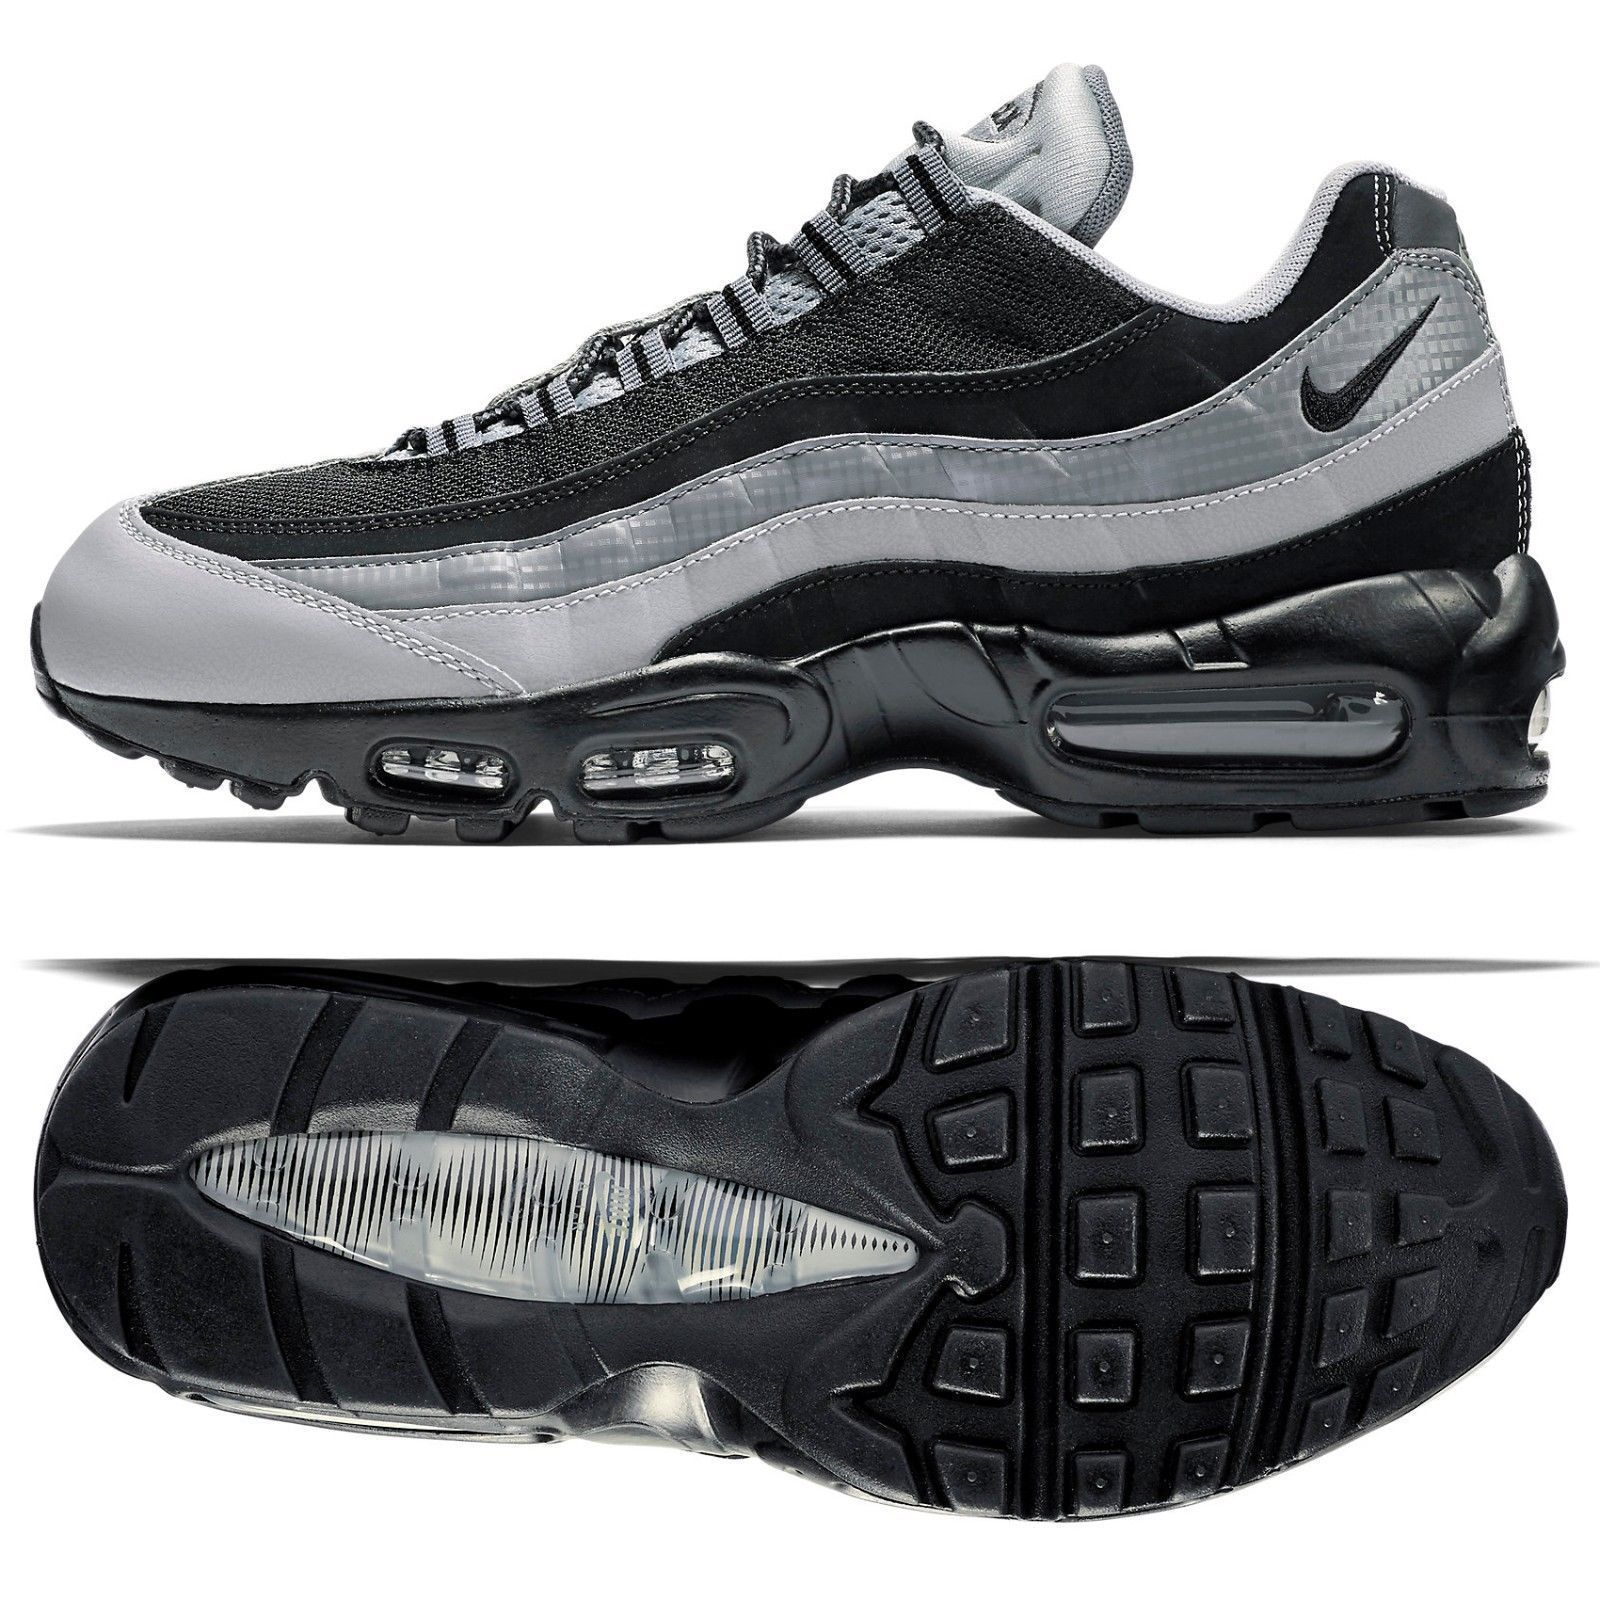 buy online 26a4a 4c1b4 Nike Air Max 95 Essential Og BLACK WOLF Grey and 50 similar items. 57